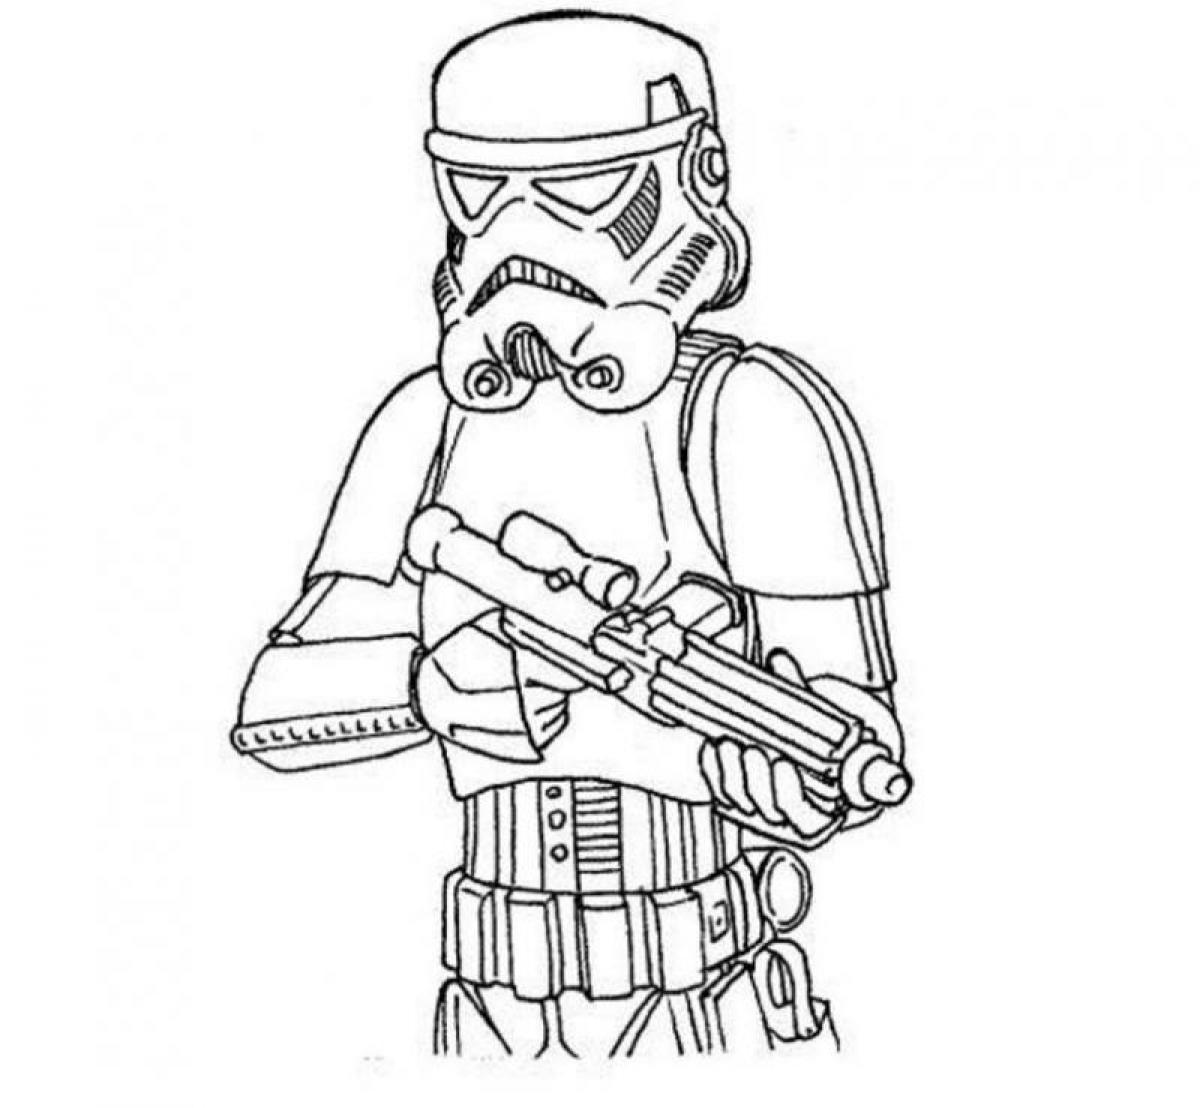 star wars colouring for kids star wars coloring pages download and print star wars star wars for colouring kids